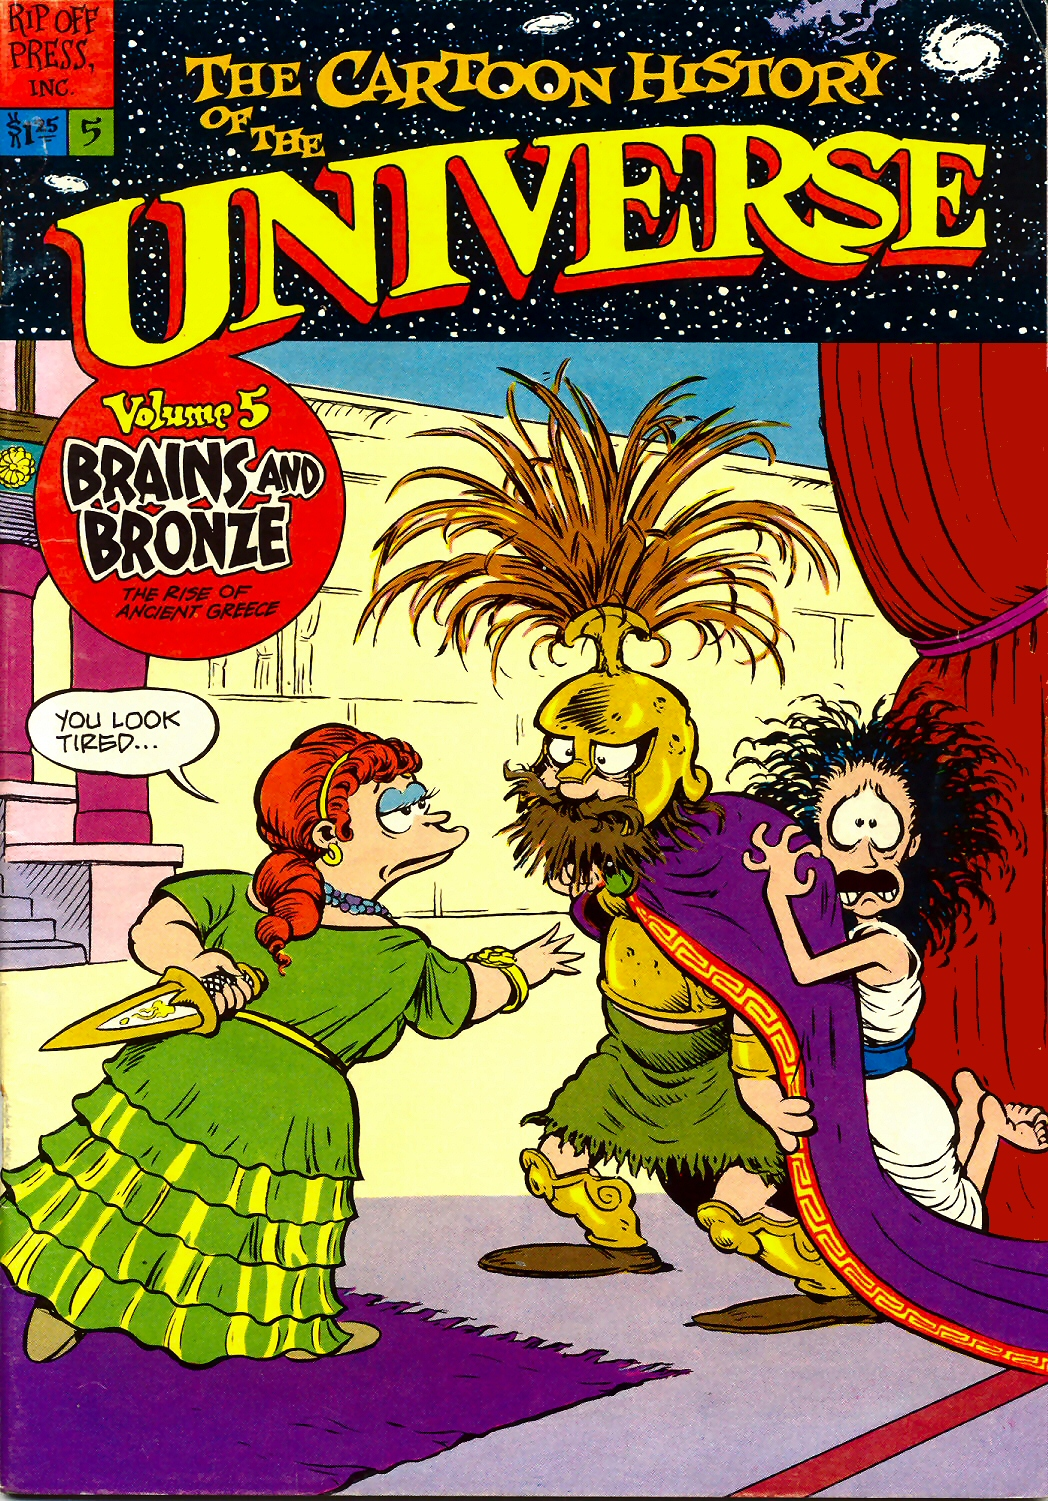 Read online The Cartoon History of the Universe comic -  Issue #5 - 1